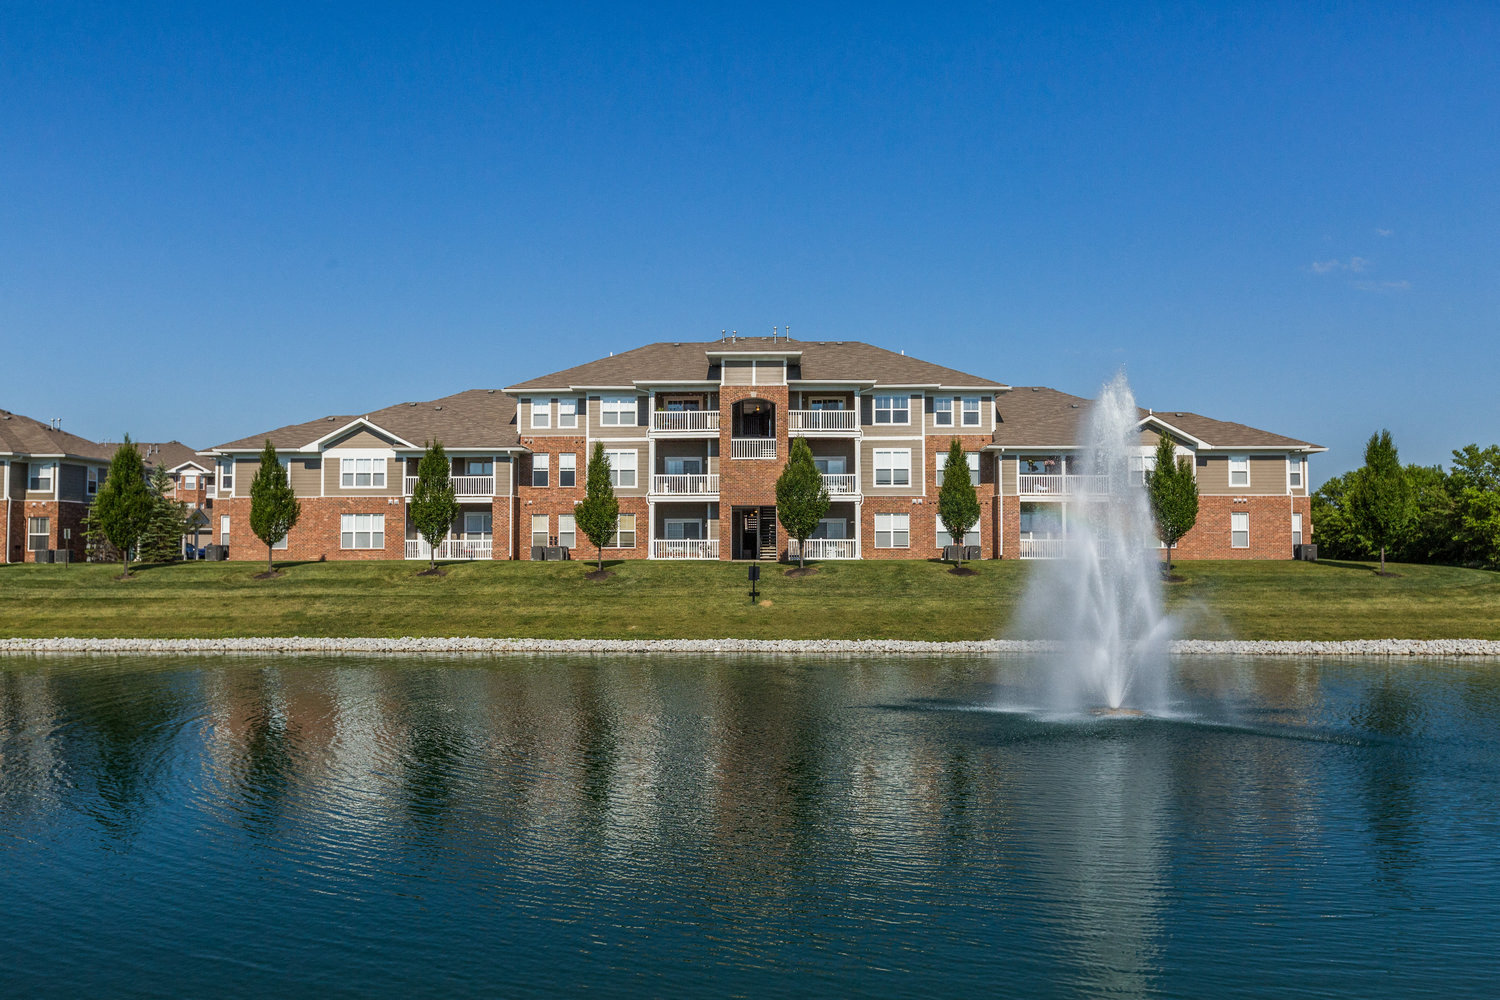 Lake Area at Maple Knoll Apartments, Westfield